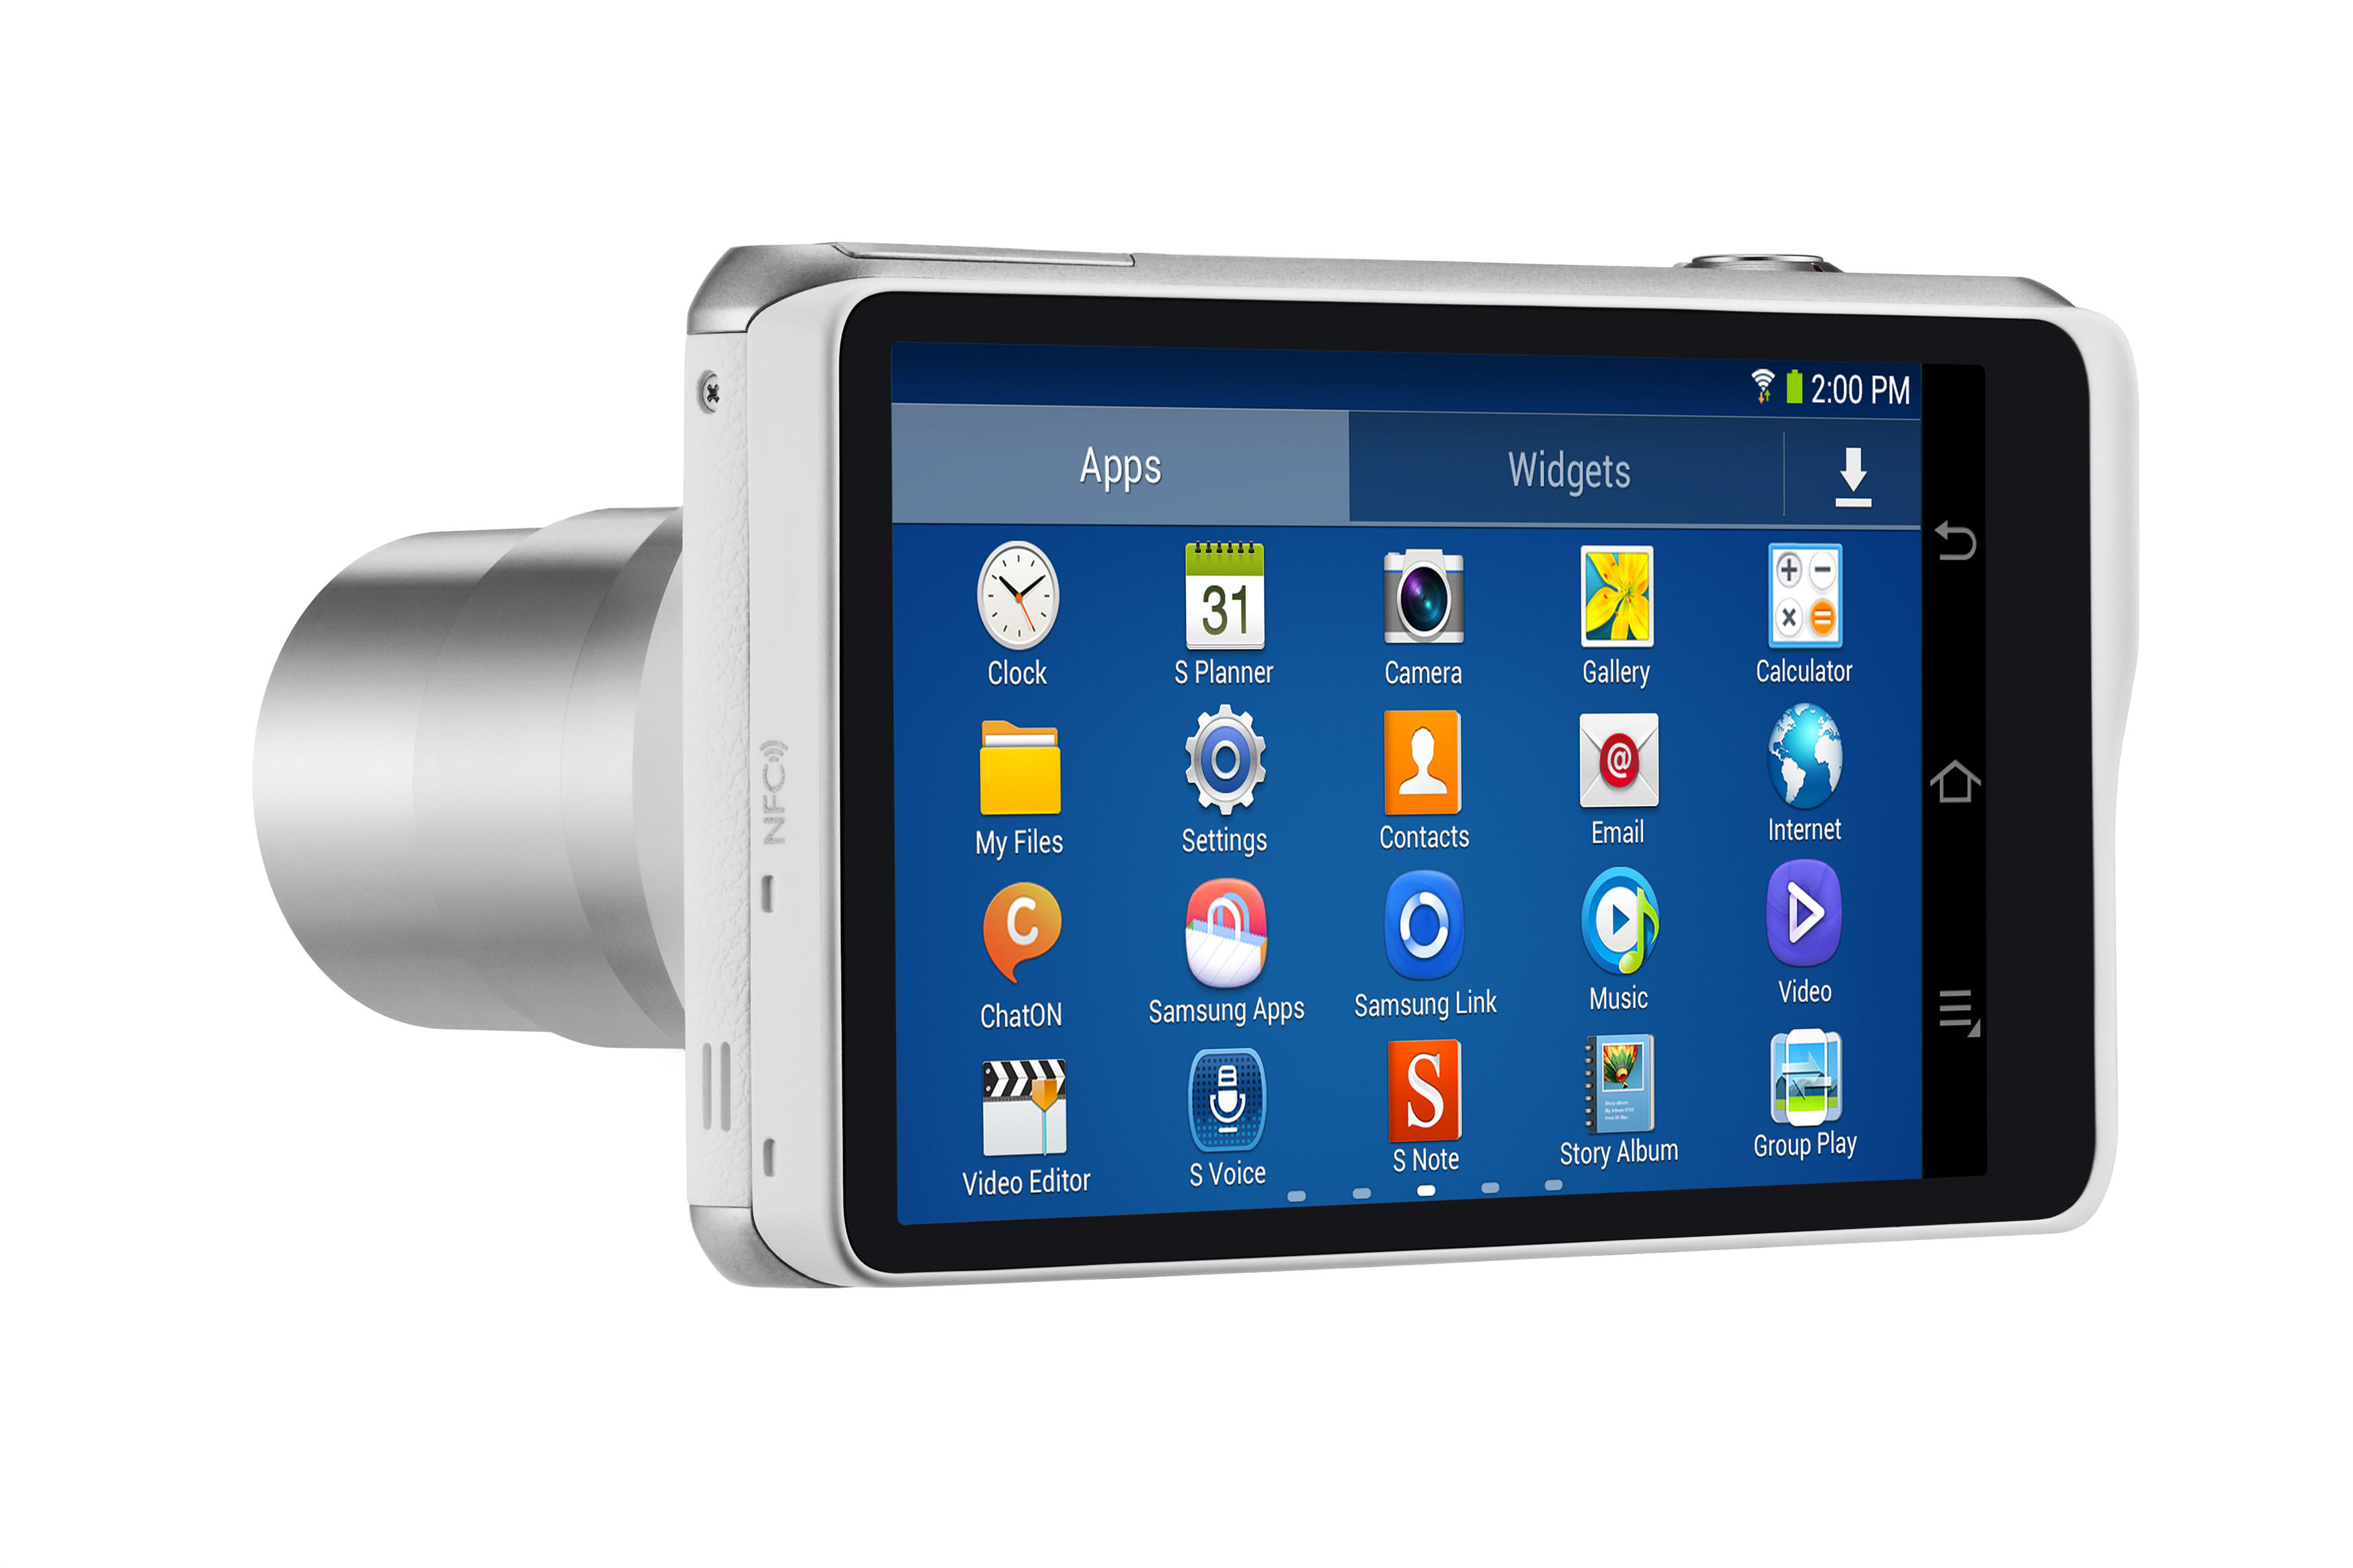 Samsung Galaxy Camera 2 ups the Android camera ante